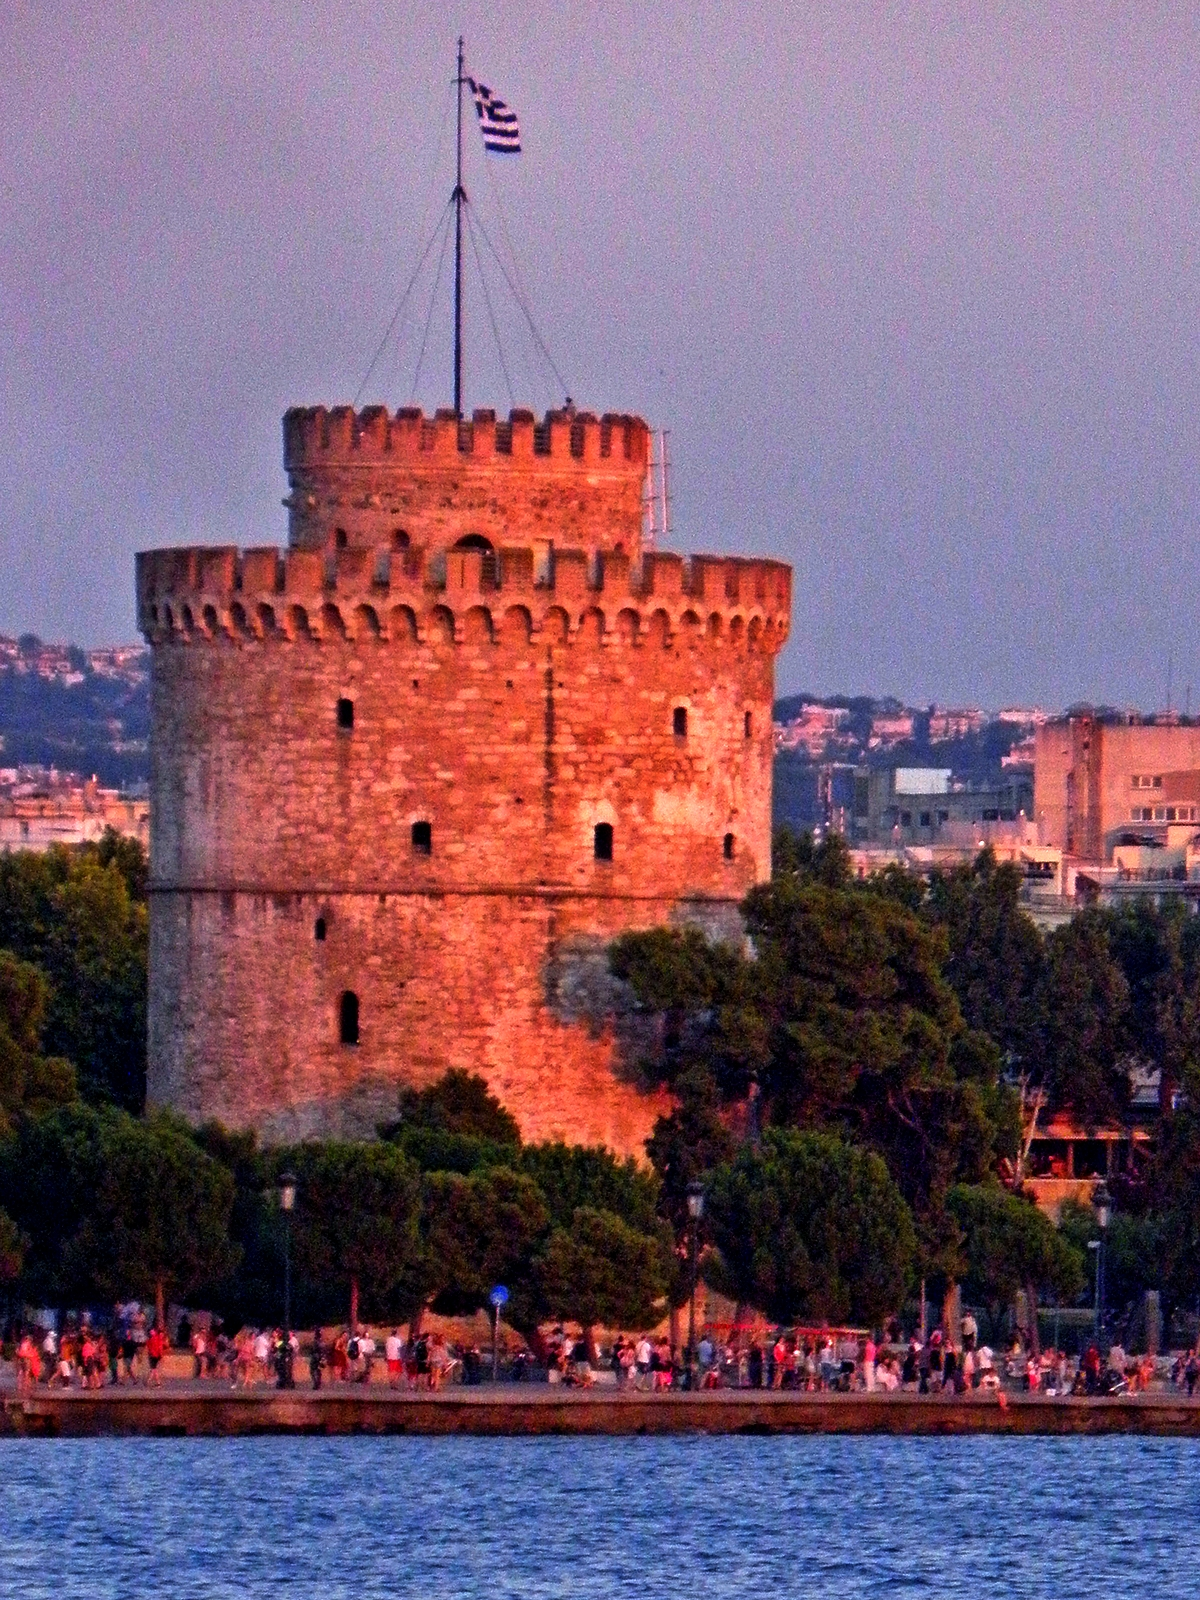 "The Tower of Blood of Thessaloniki Ο Πύργος του Αίματος της Θεσσαλονίκης, Turkish: Kanli Kule aka (after the whitewashing 1912) The White Tower of Thessaloniki (Greek: Λευκός Πύργος Turkish: Beyaz Kule;) built 1450 -1470 after the Turks captured Thessaloniki in 1430. The Tower was used by the Turks successively as a fortress, garrison and a prison. In 1826, there was a massacre of the rebellious Janissaries imprisoned there. Because very often the view of the Tower was painted with blood and there were many victims of Ottoman torturers and executioners, as well as executions of the Janissariesprisoners, at that time until the end of the 19th century the Tower was named ""Tower of the Blood"". Επειδή πολύ συχνά η όψη του Πύργου βαφόταν με αίμα και υπήρχαν πολλά θύματα από Οθωμανούς βασανιστές και εκτελεστές αλλά και εκτελέσεις των φυλακισμένων από τους Γενίτσαρους, εκείνη την περίοδο μέχρι και το τέλος του 19ου αιώνα ο Πύργος είχε ονομαστεί ως «Πύργος του Αίματος»."